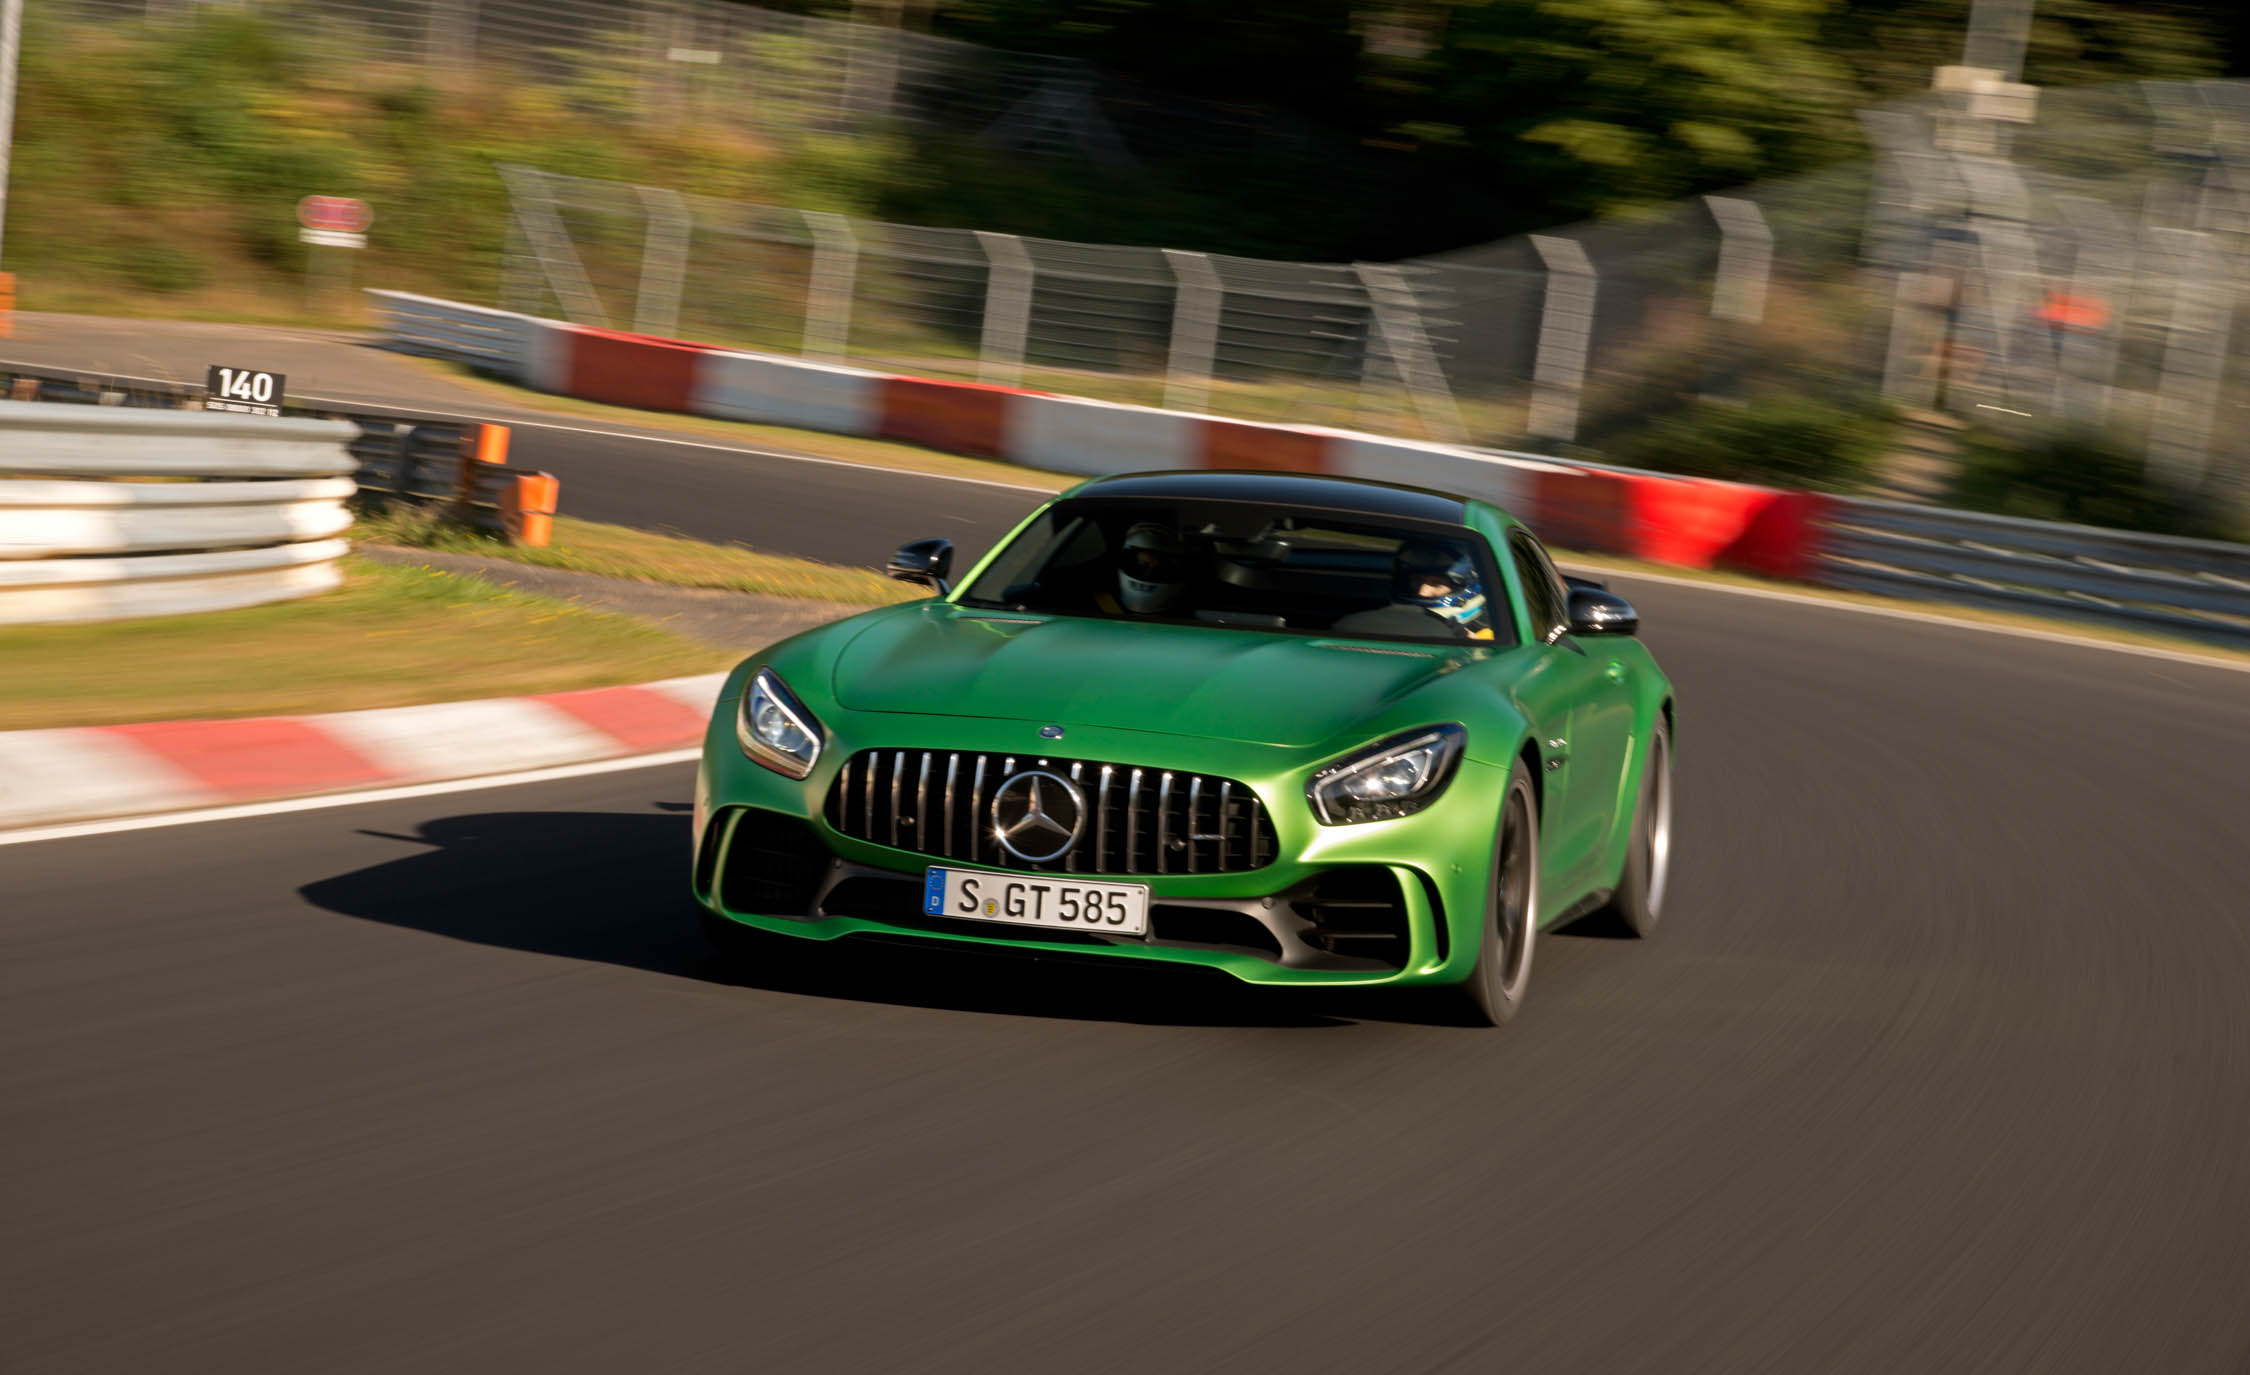 2017 Mercedes Amg Gt R Test Drive (View 1 of 22)